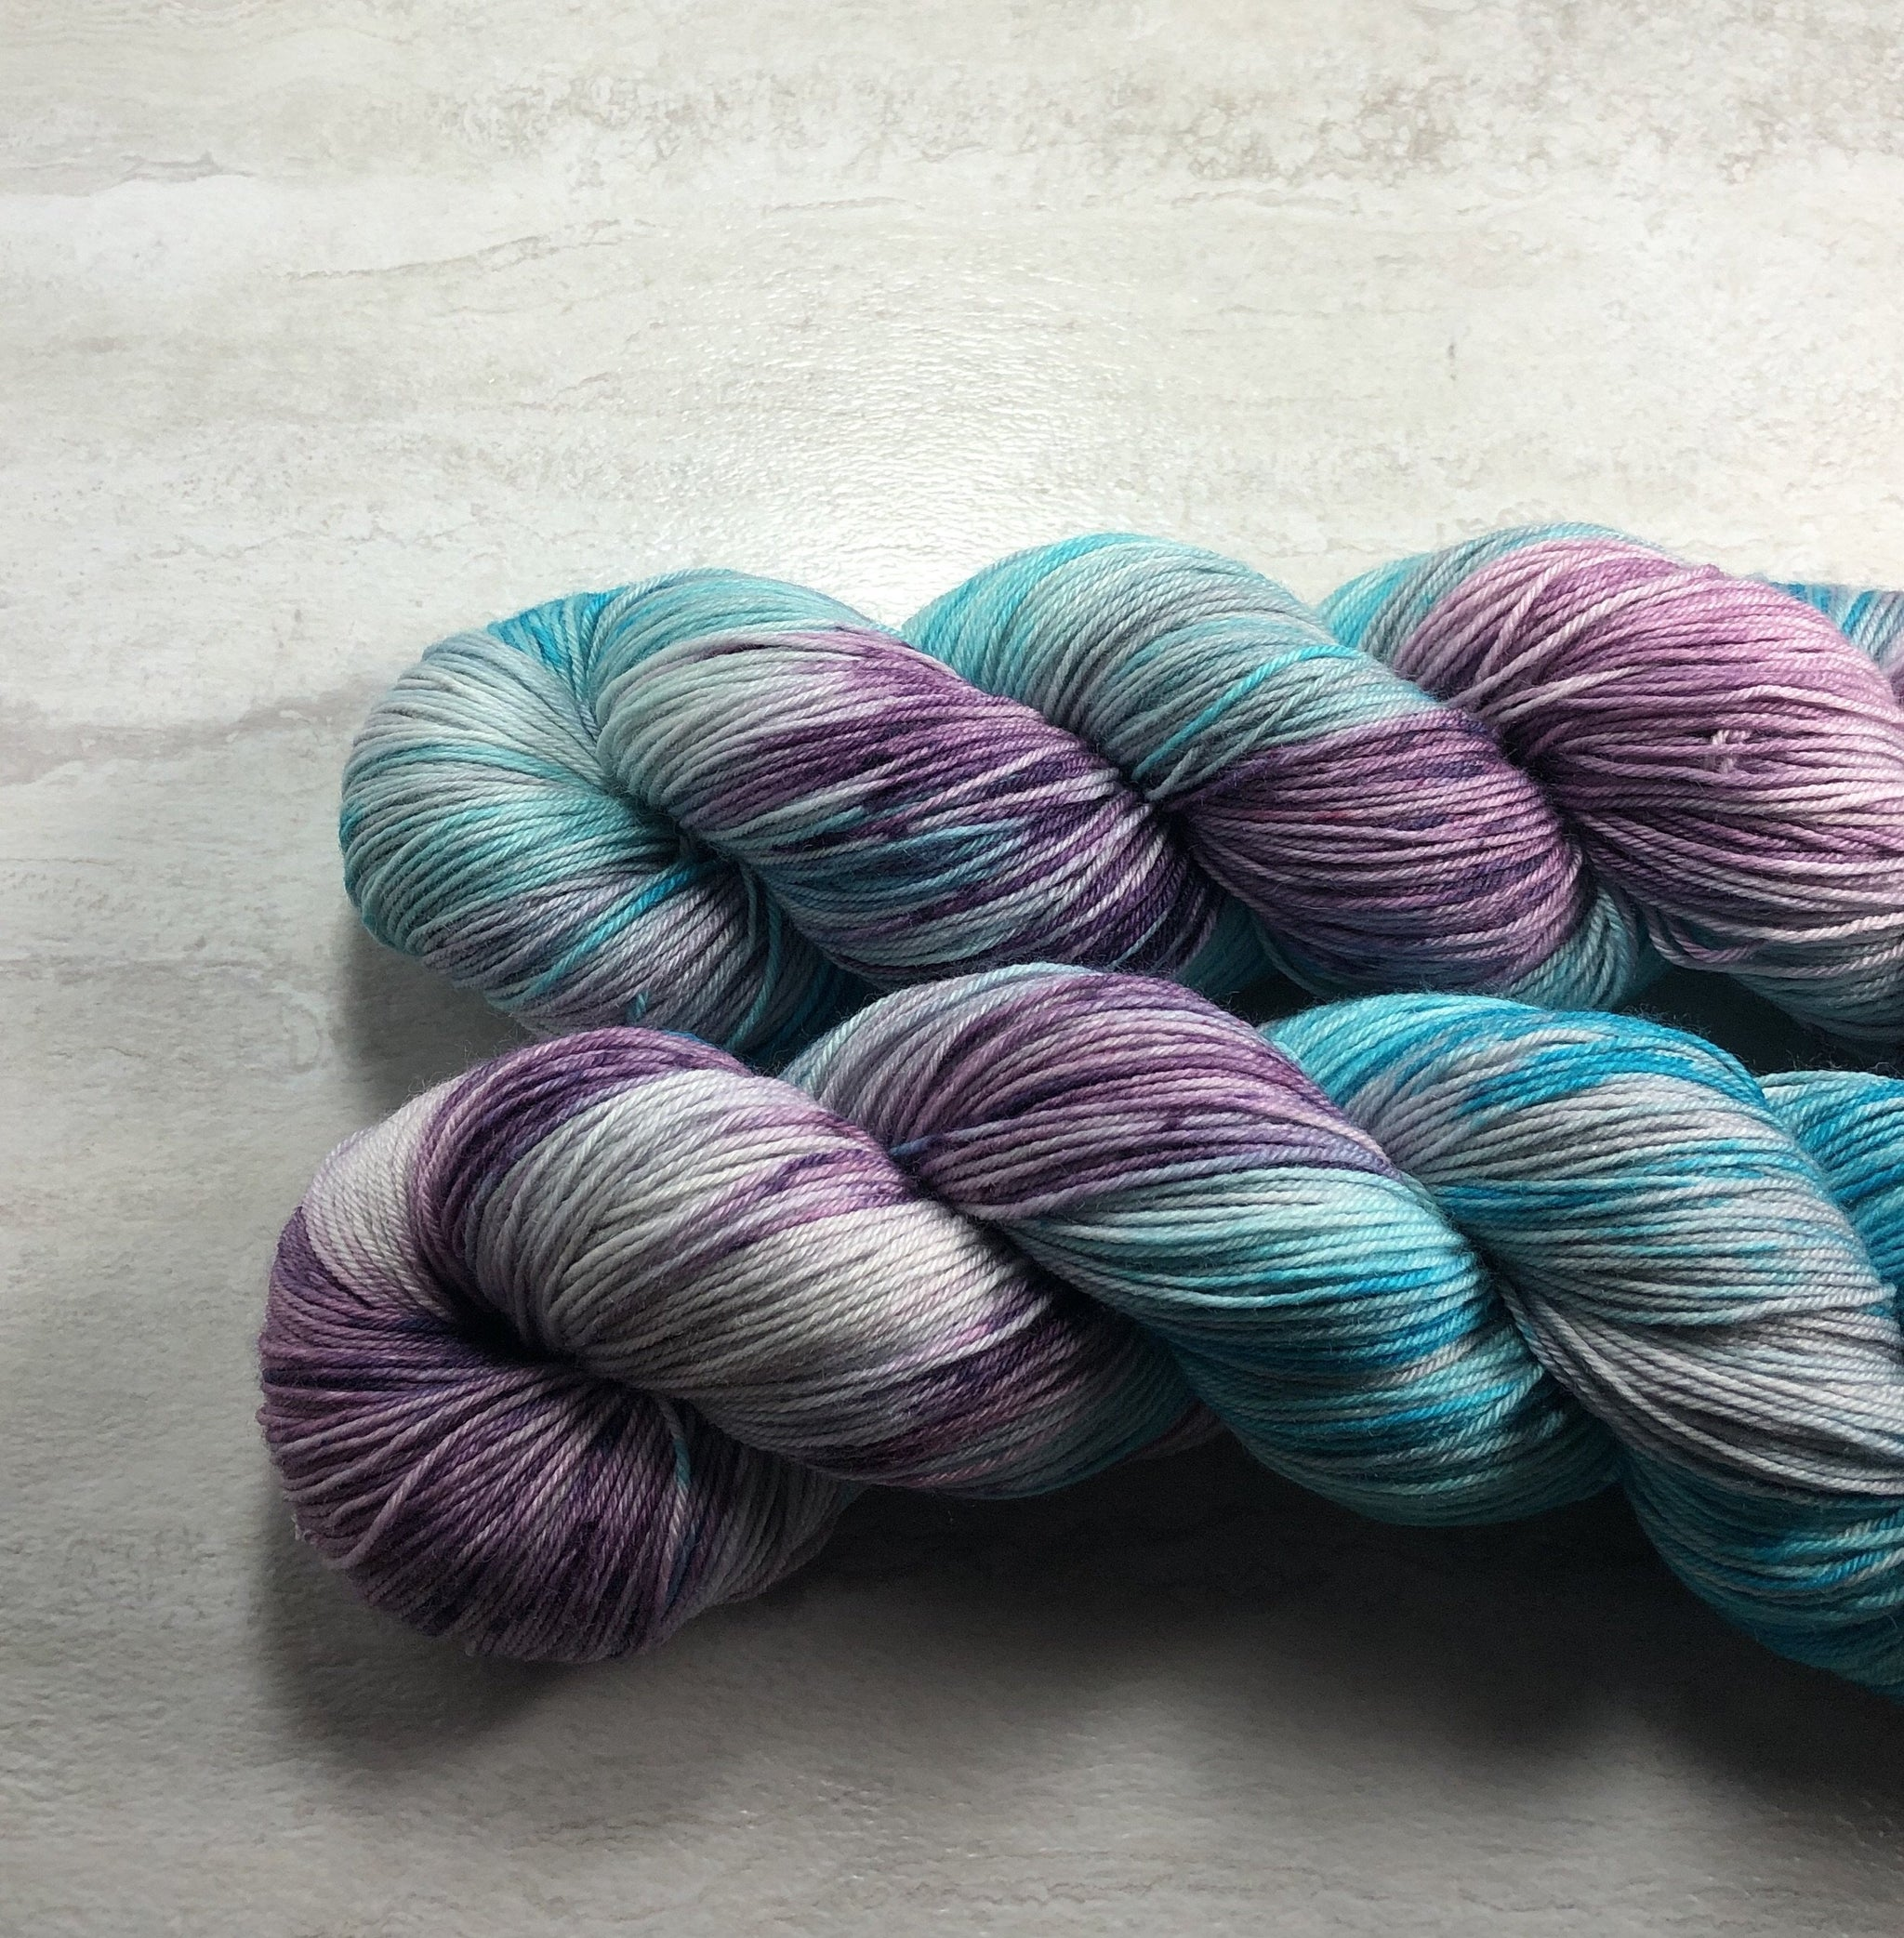 So Dreamy - Squish Wish Sock Yarn Dye is Cast Yarns